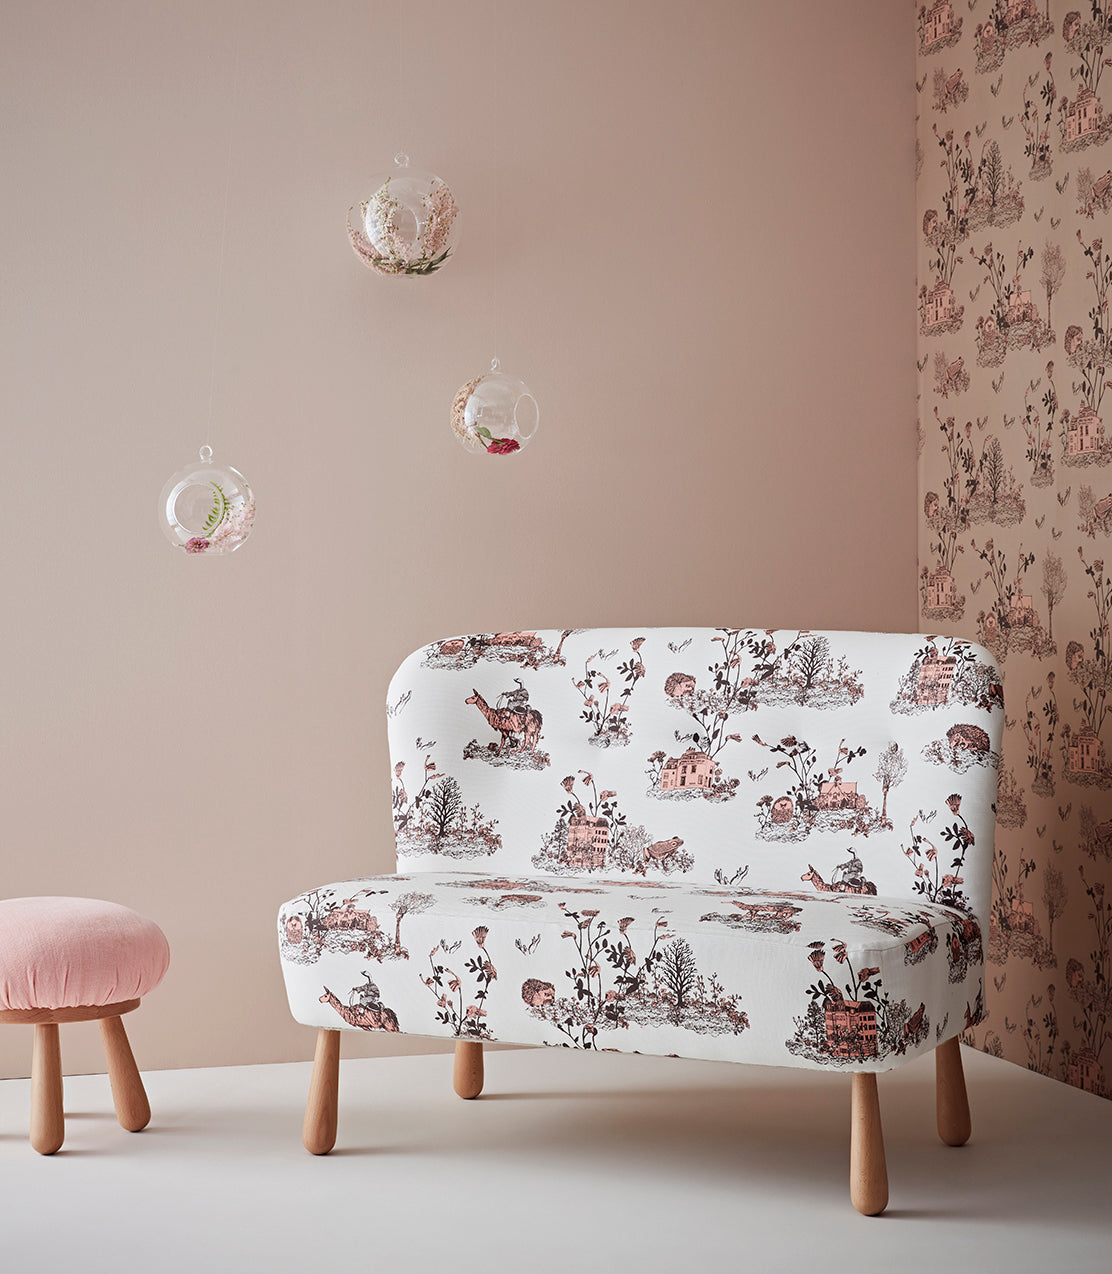 Woodlands design sofadotcom childrens range